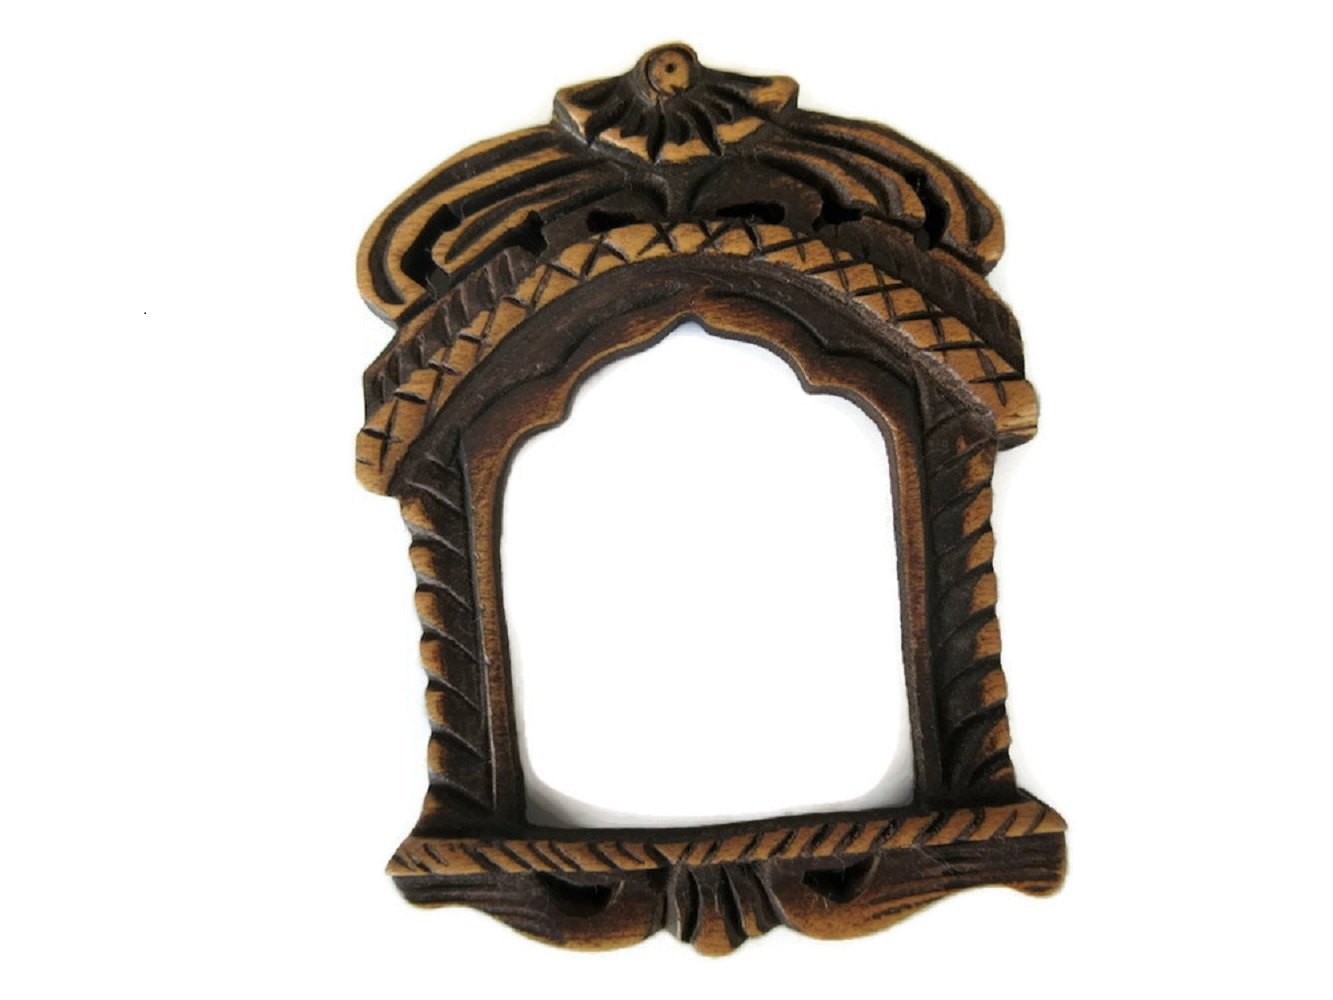 Hand Carved Wooden Window Temple Frame Pendant, Handmade Jharokha Pendant, Jewelry, GDS1046/4 (2 P ieces)